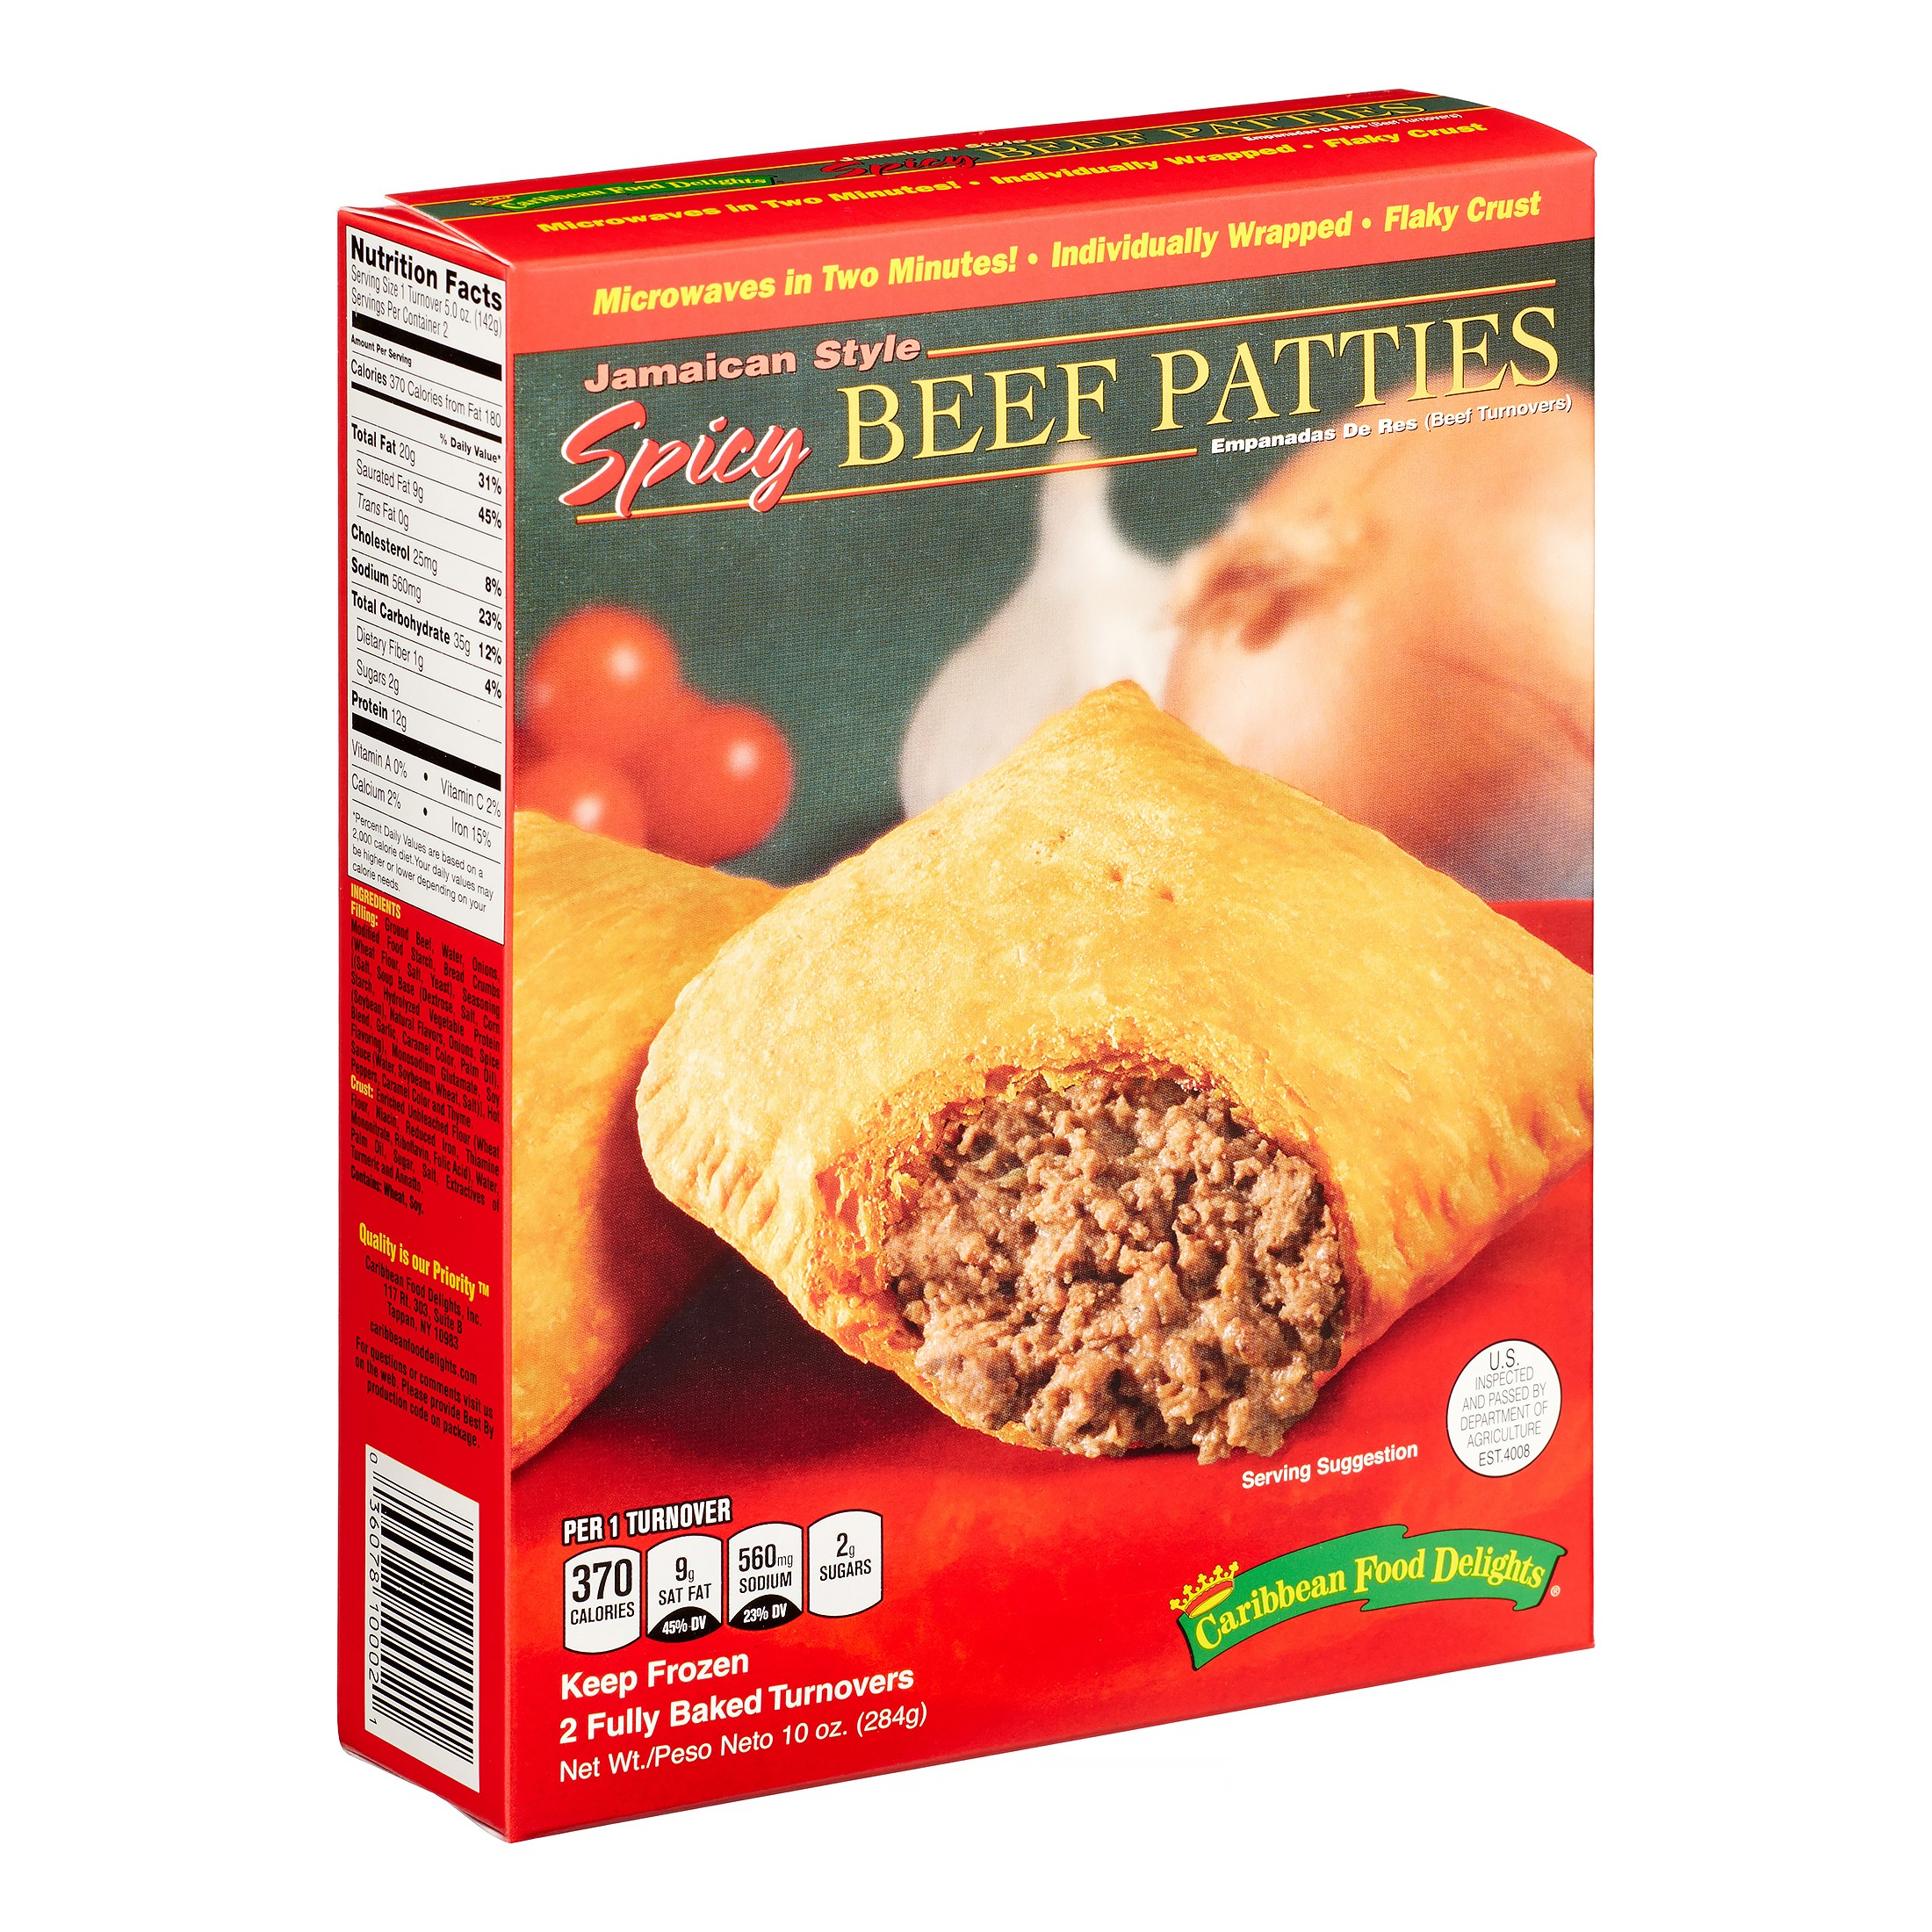 Caribbean Food Delights Jamaican Style Spicy Beef Turnover Patties ...